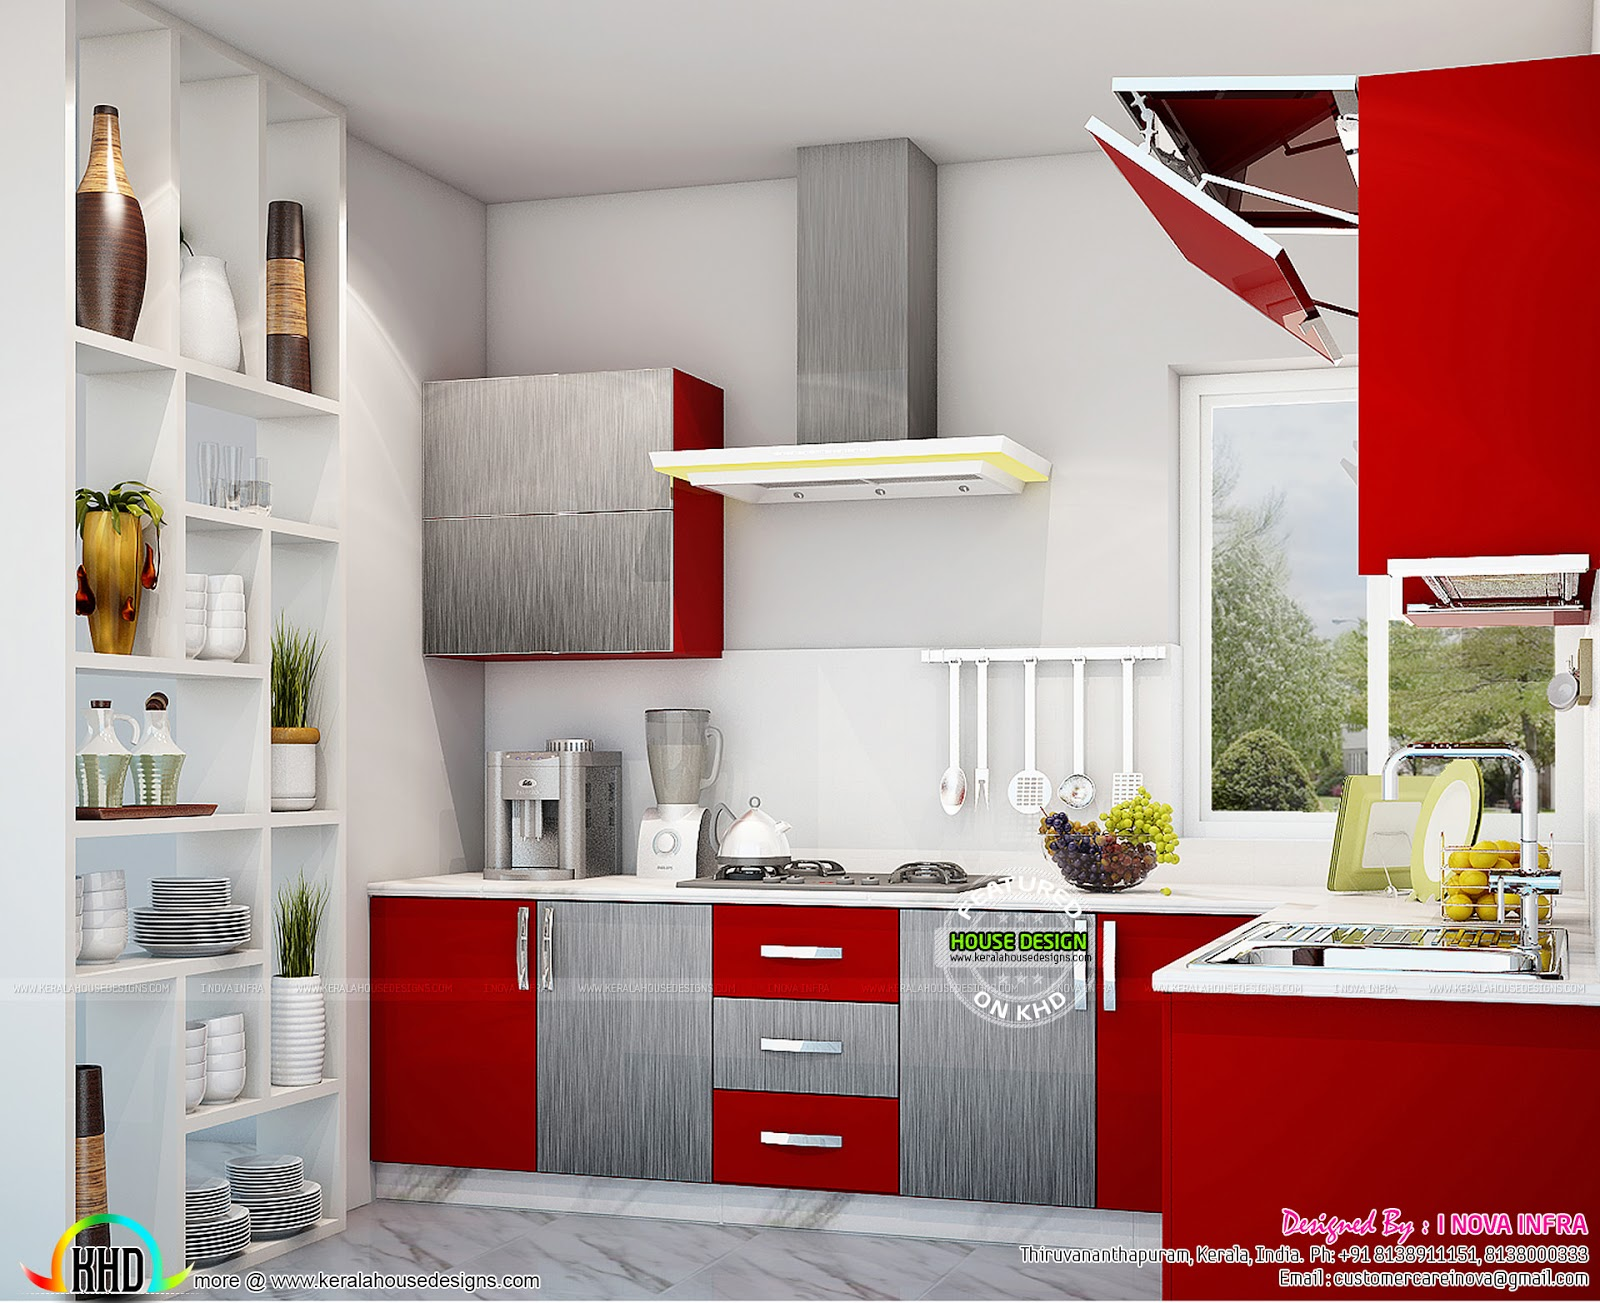 Kitchen interior works at trivandrum kerala home design for Interior decoration images